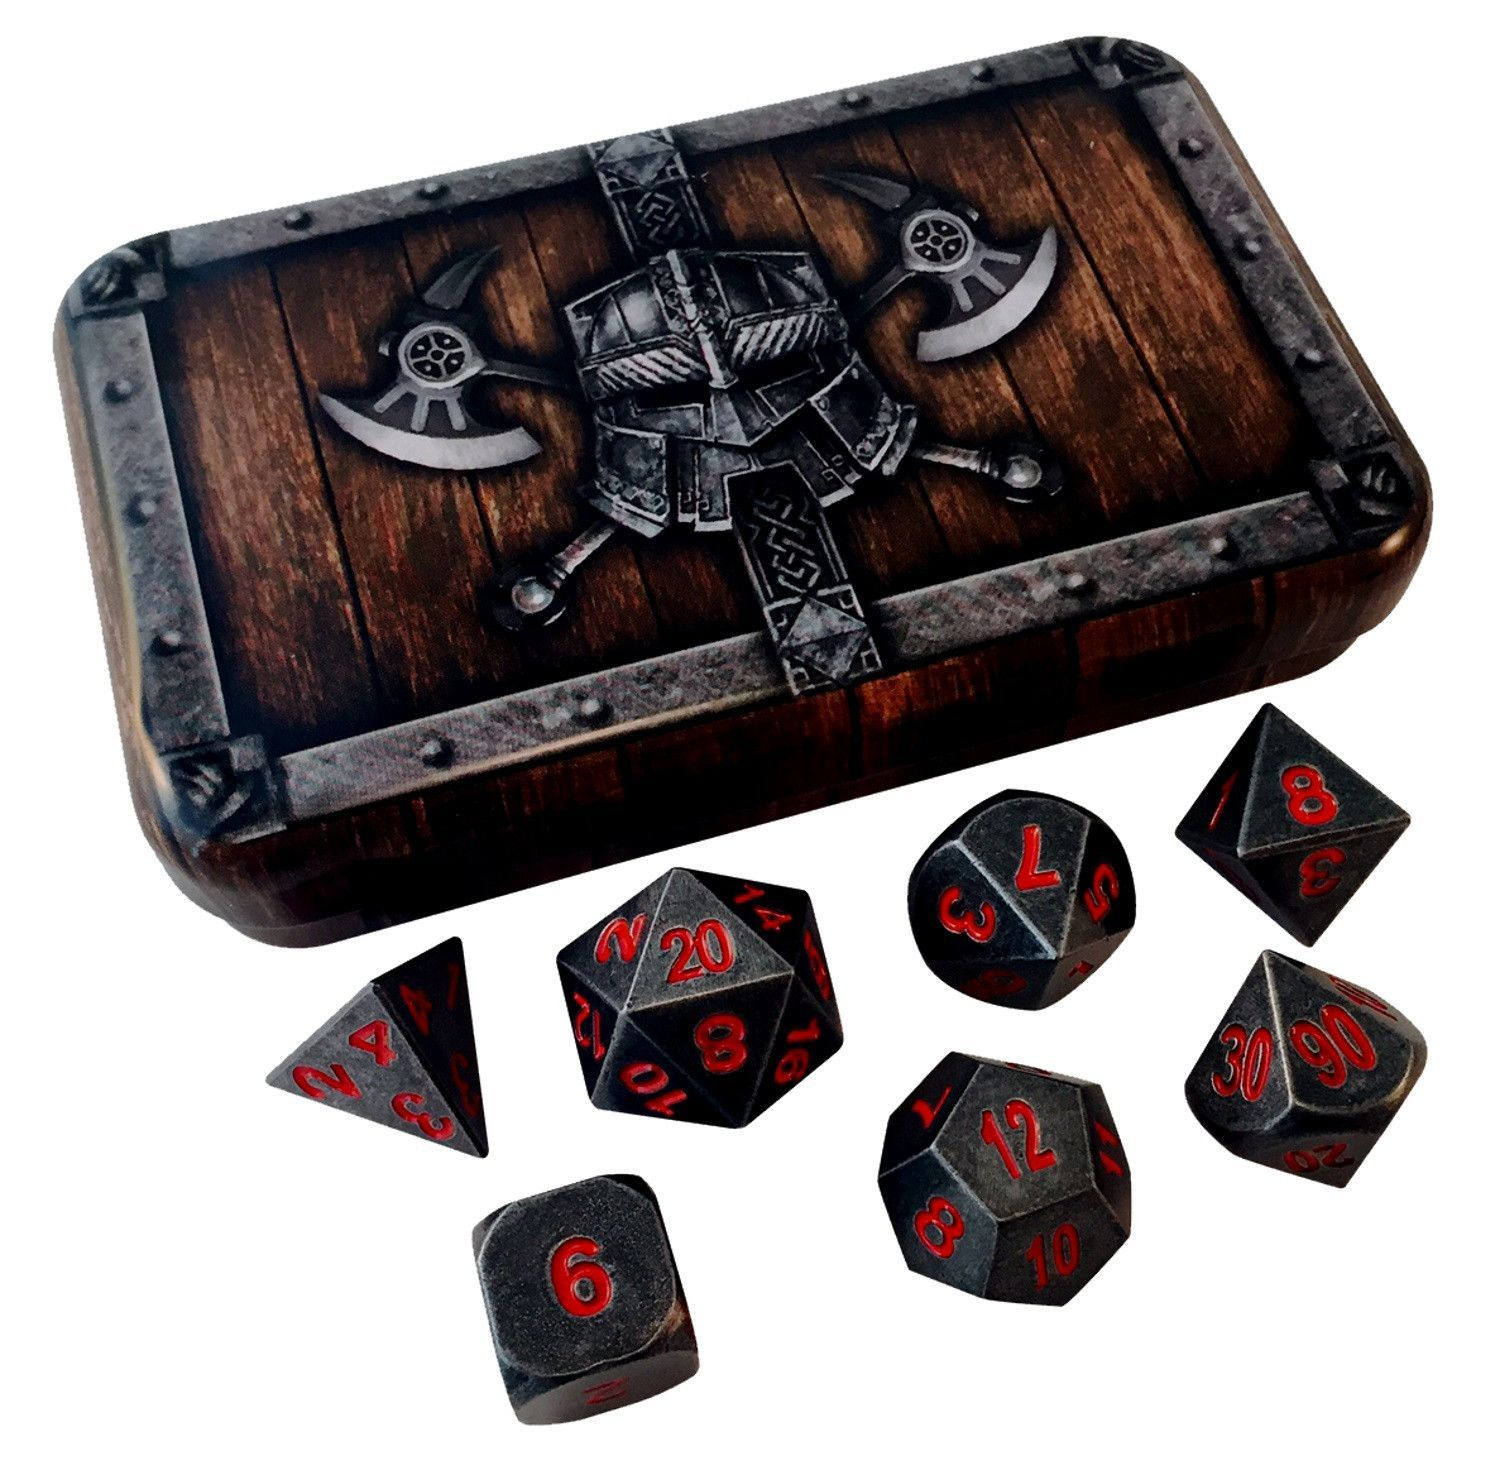 Chest Game Set Dwarven Chest With Butcher 39s Bill Industrial Gray With